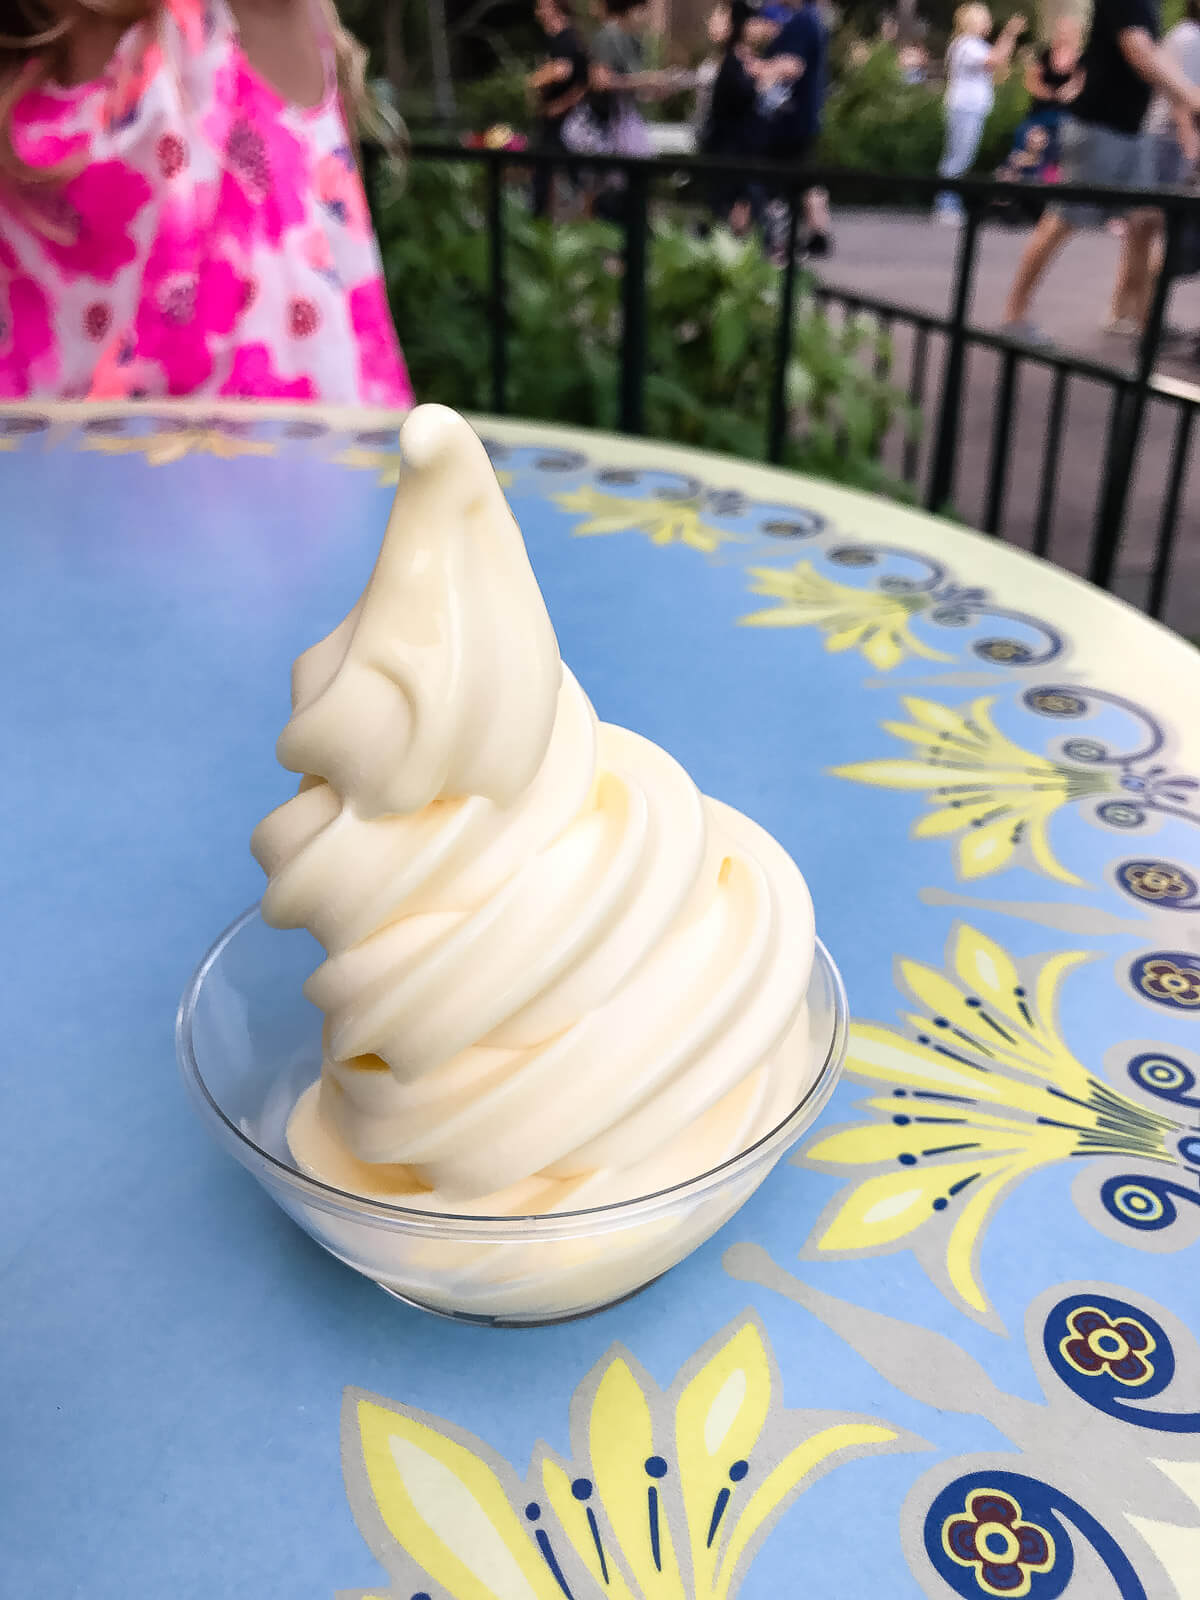 Dole whip is a must when visiting Disneyland. You can buy a dole whip from the Tiki Juice bar at Adventureland. ohsweetbasil.com